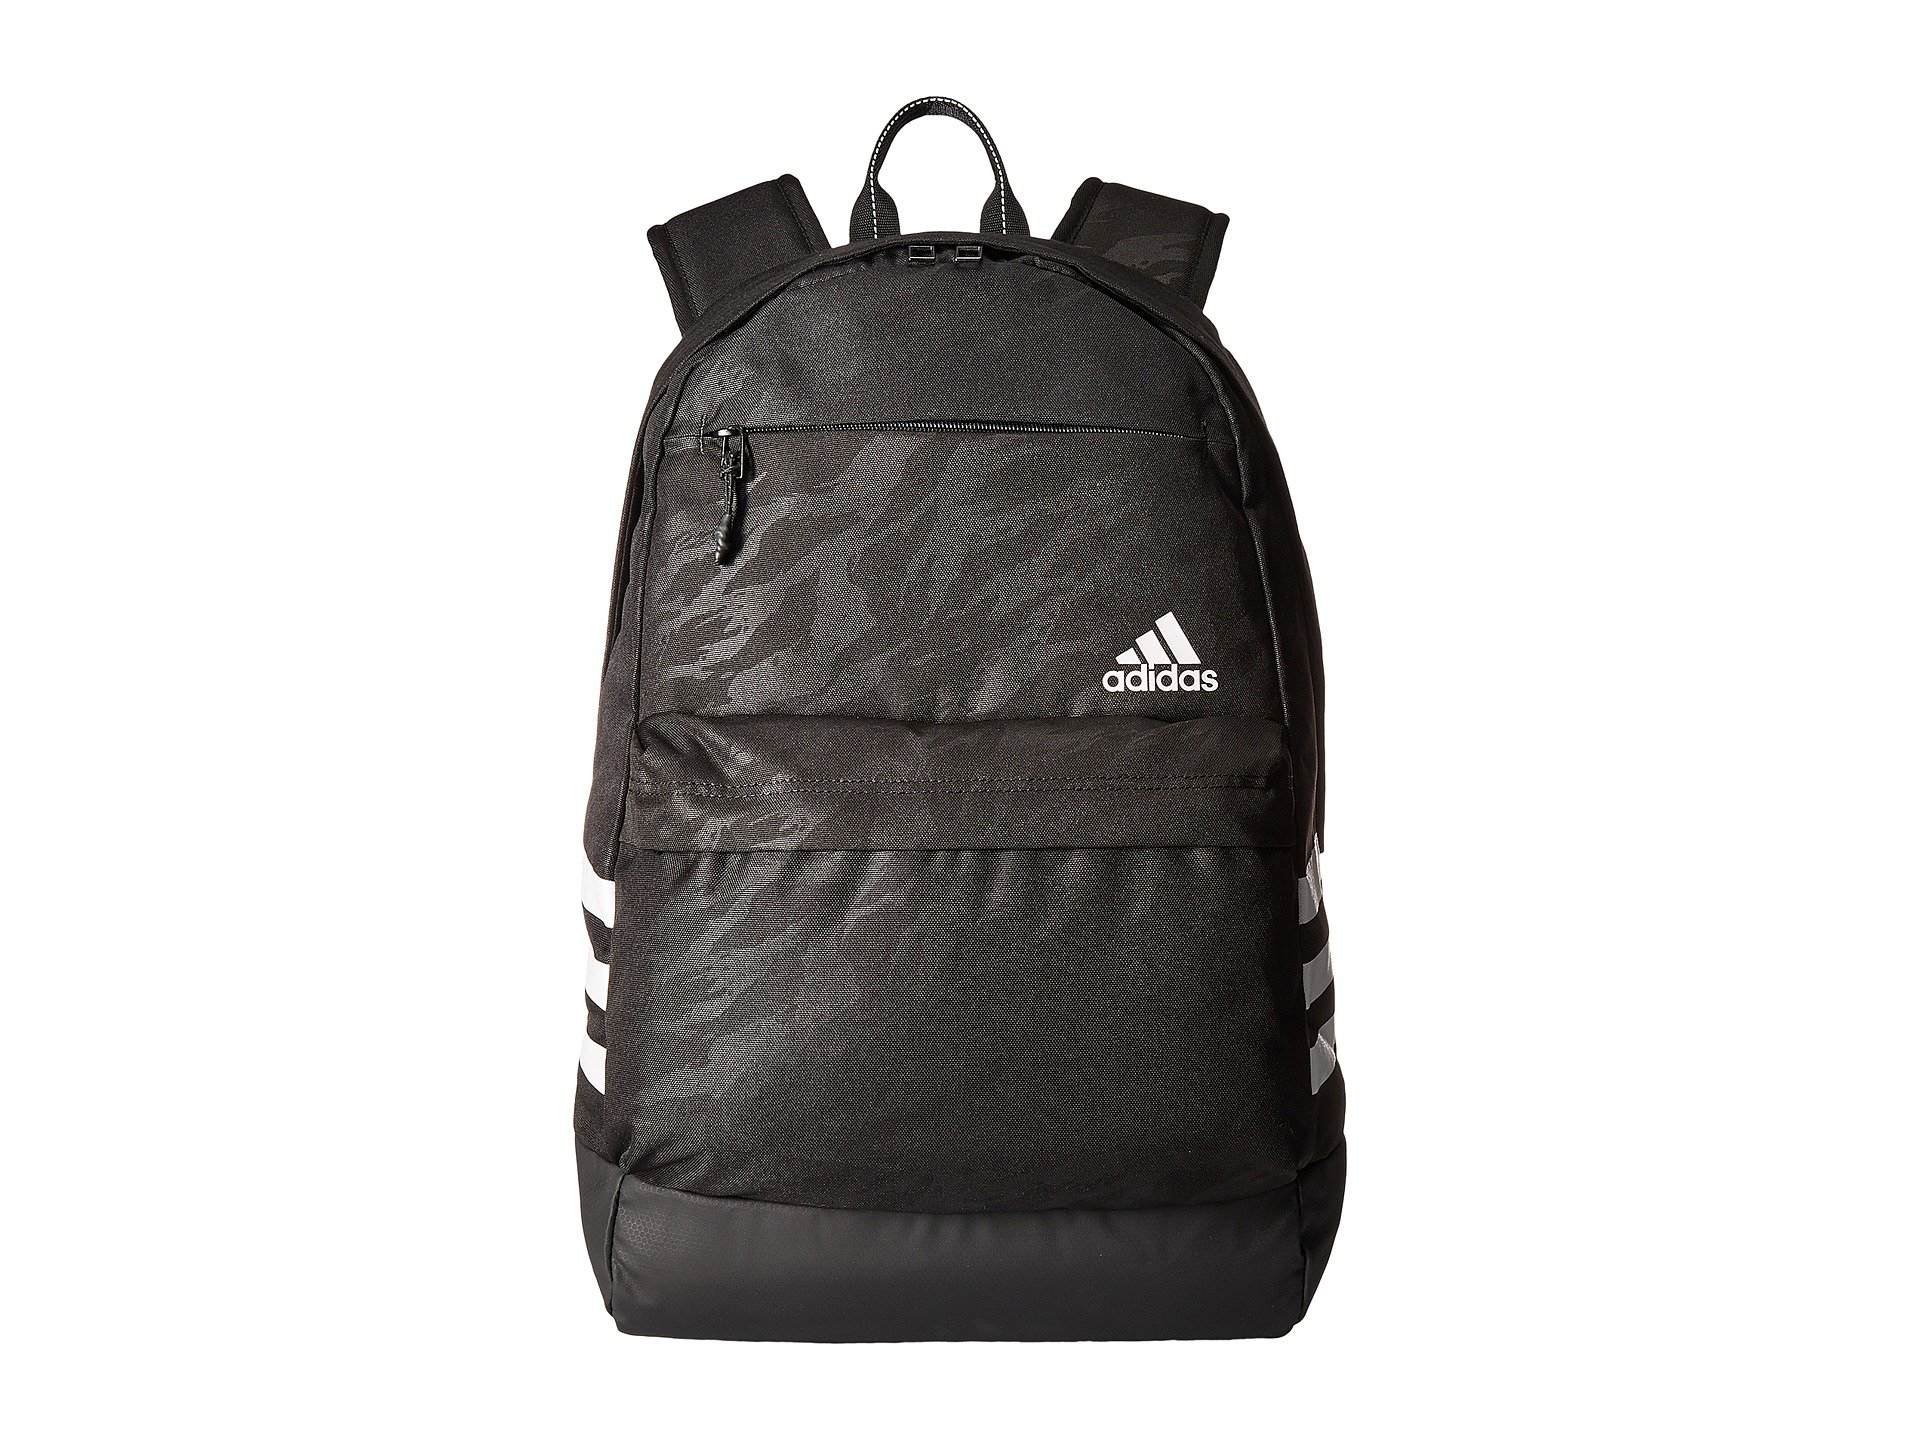 ADIDAS ORIGINALS DAYBREAK BACKPACK 91ecec7a314af